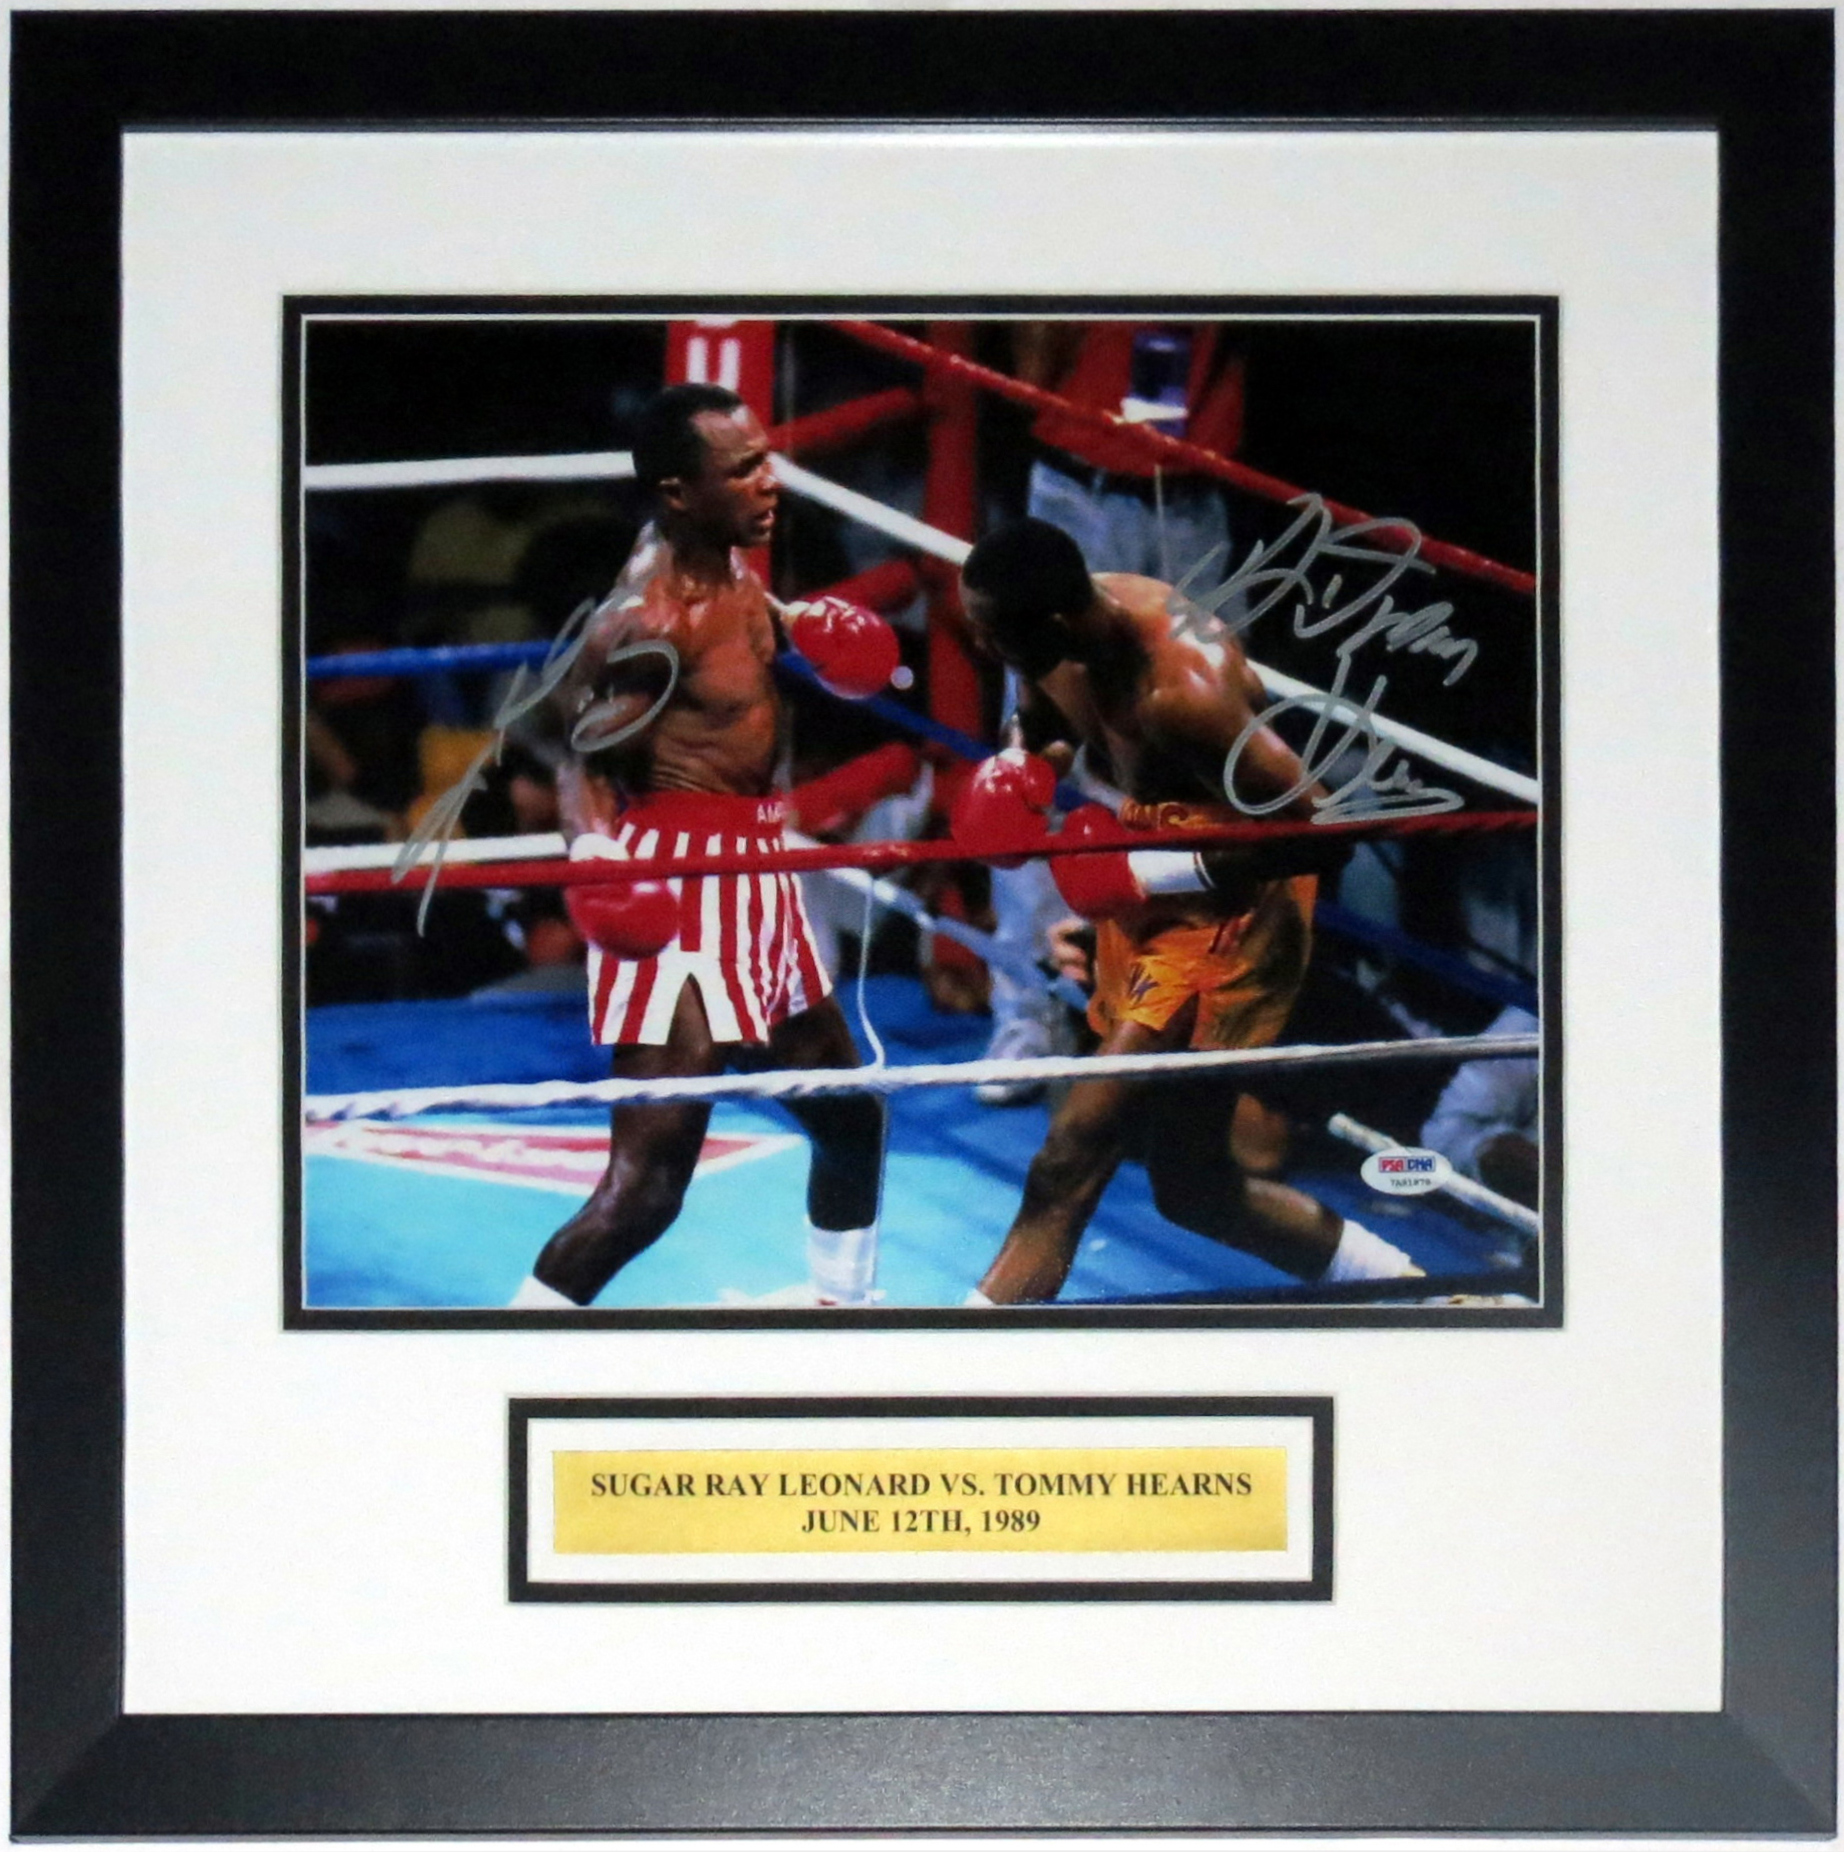 Sugar Ray Leonard & Tommy Hearns Dual Signed 11x14 Photo - PSA DNA COA Authenticated - Professionally Framed & Plate